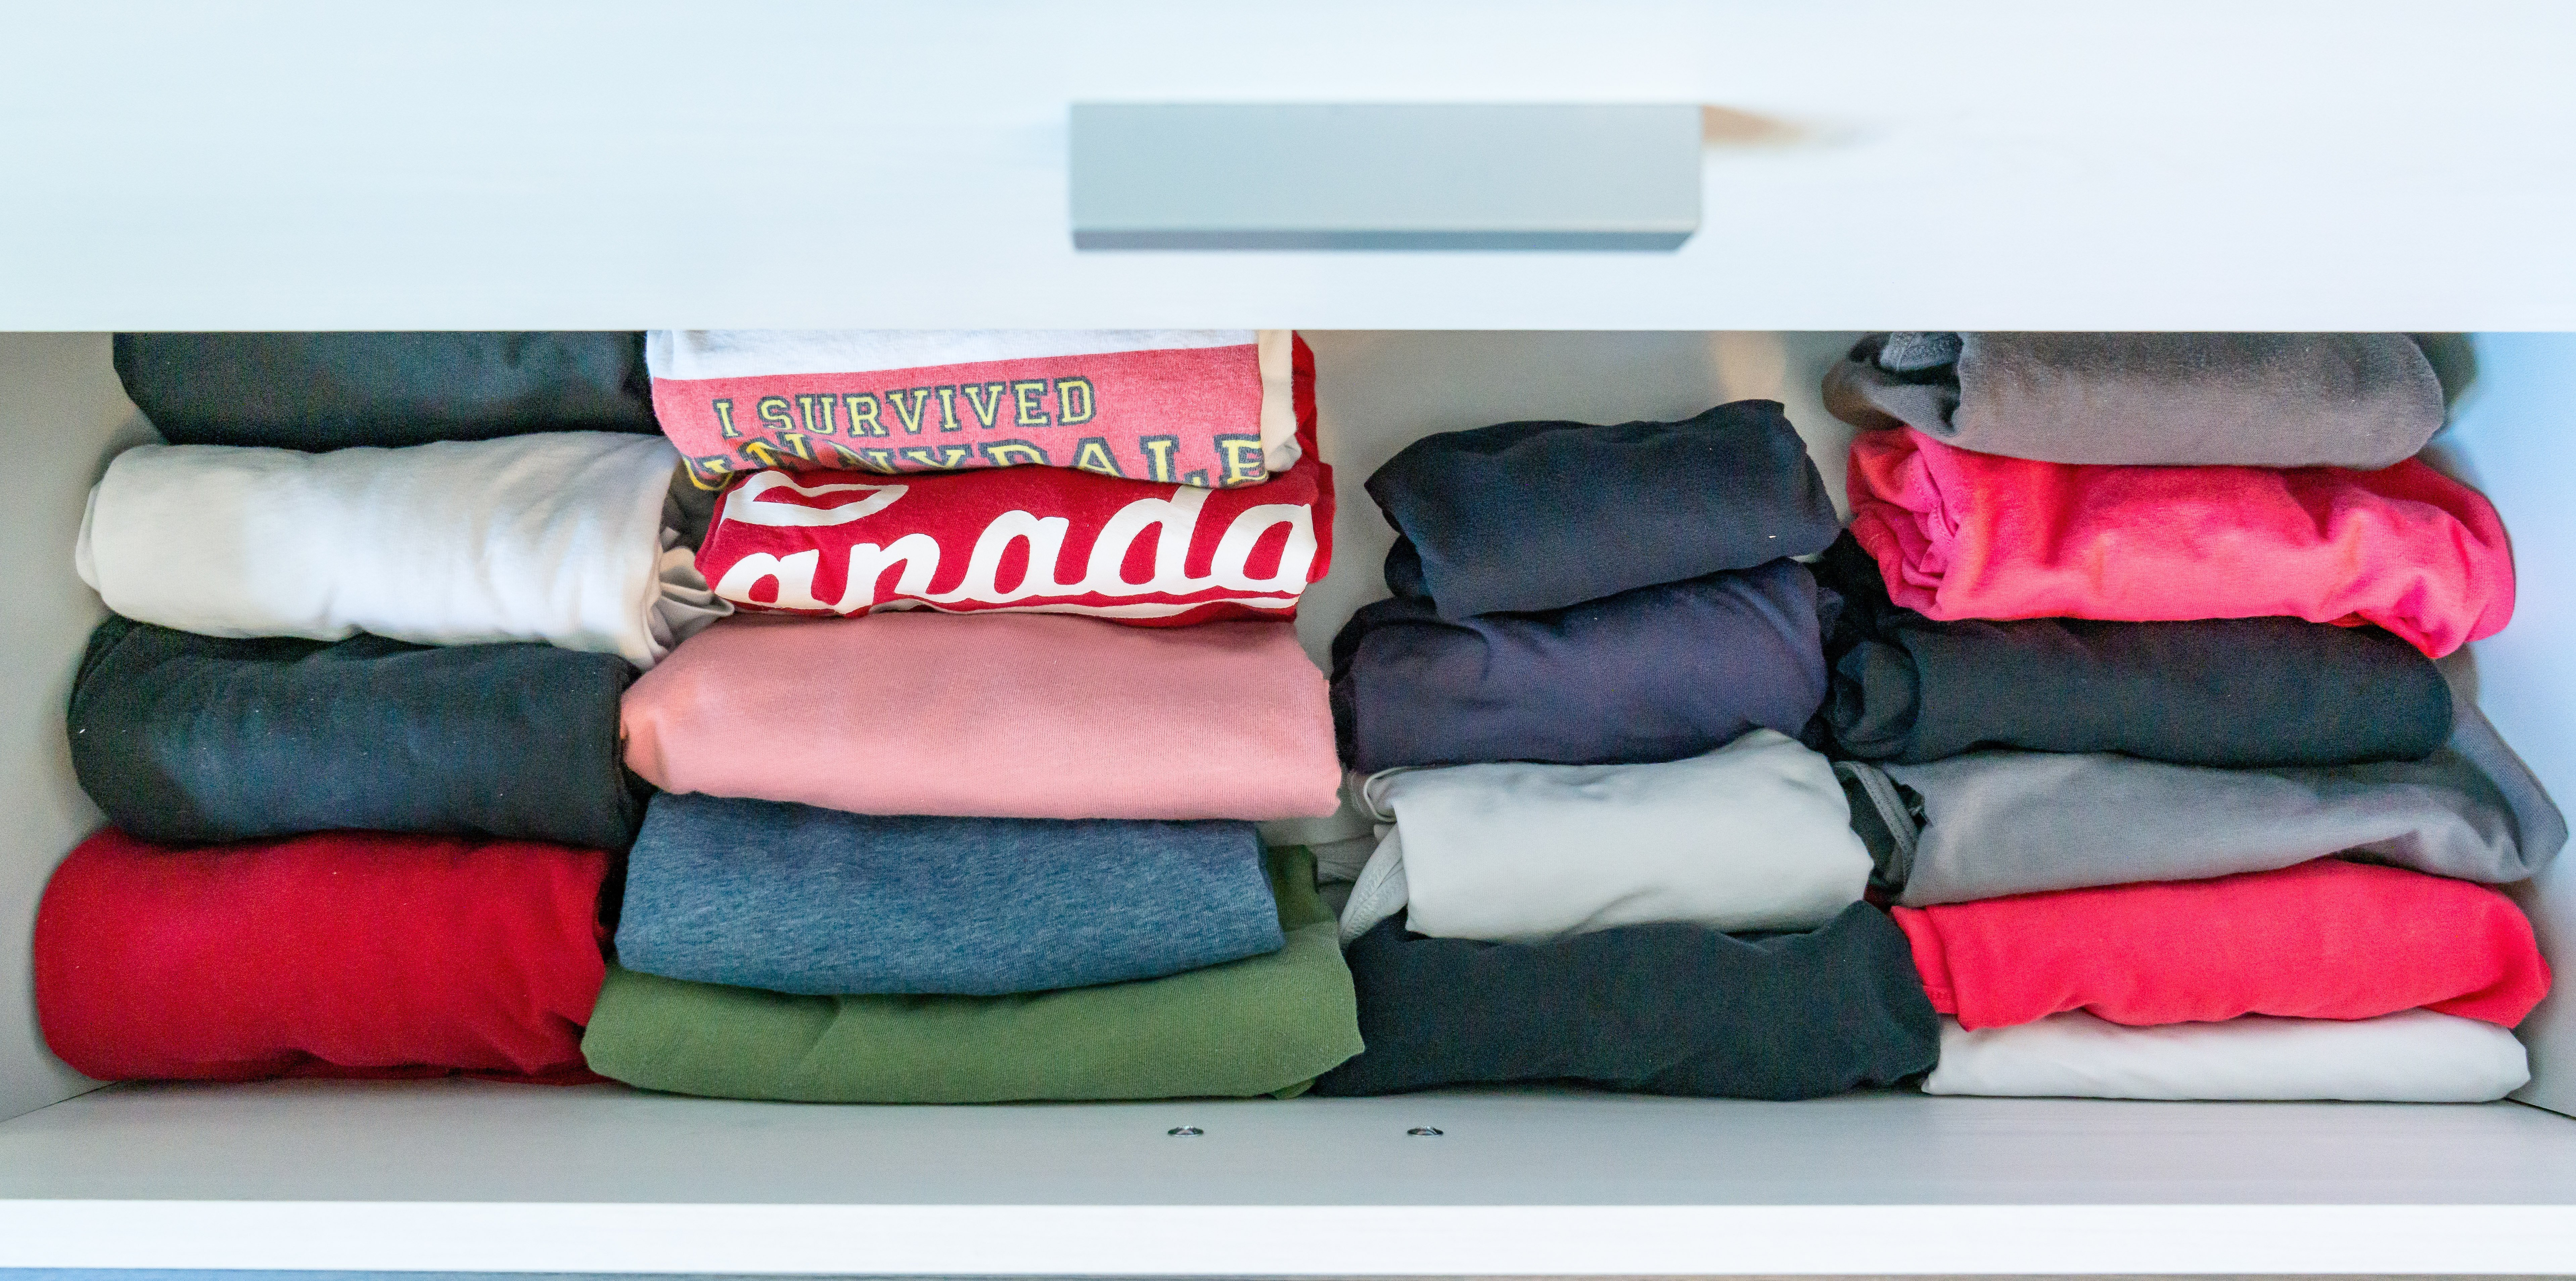 10 1heather t shirt drawer after - 10 Budget Home Organizing Products Under $20.00